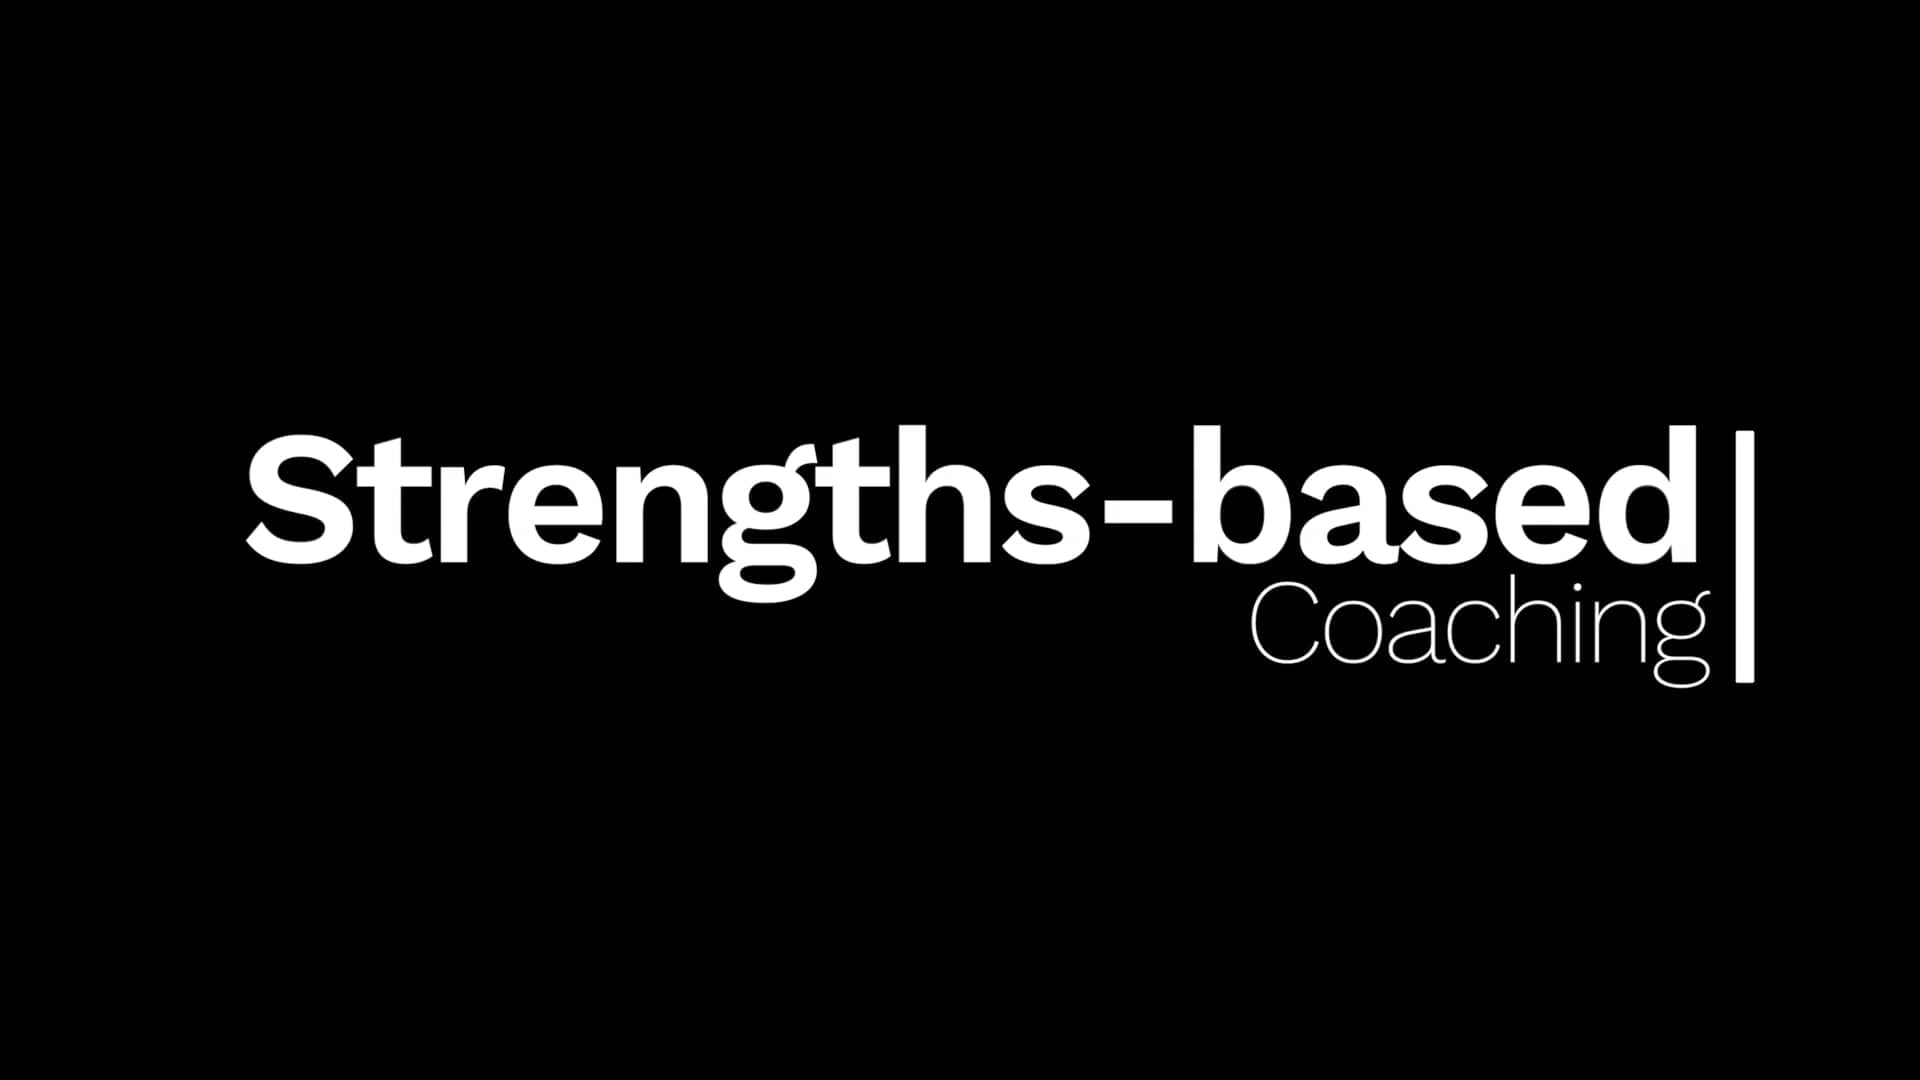 Strengths-Based Coaching: Dr. Jeffrey Auerbach